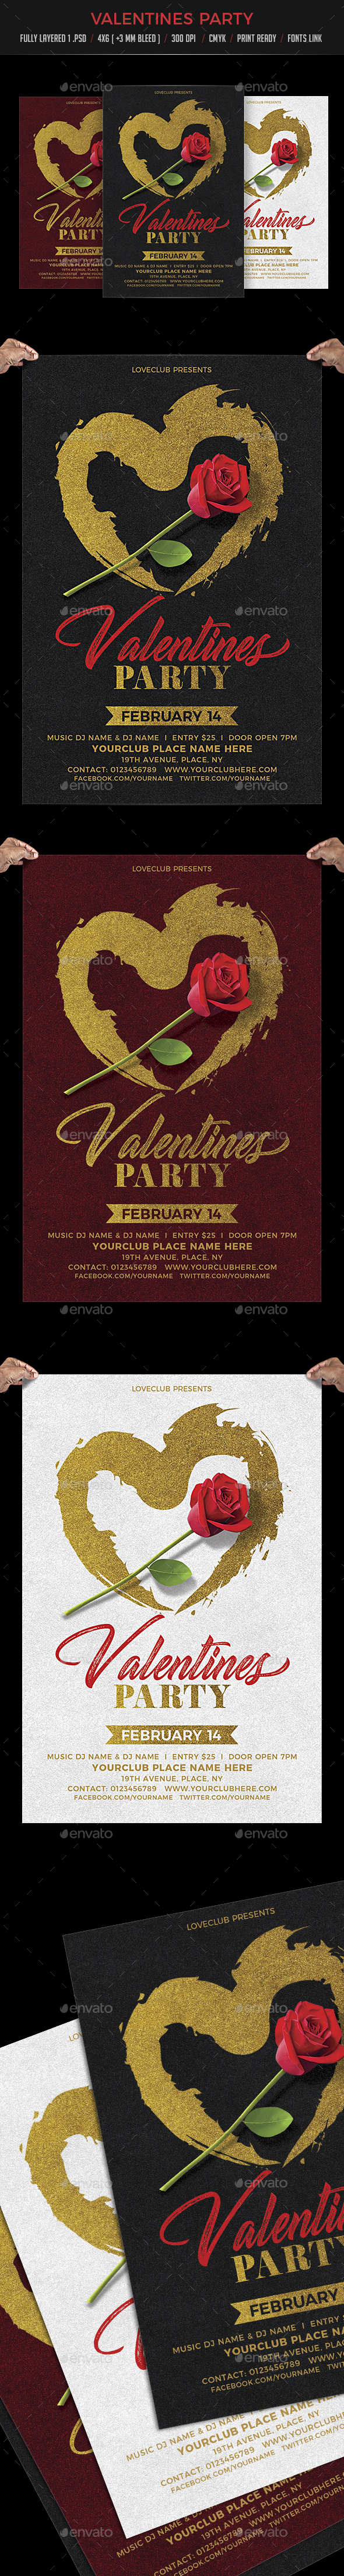 Valentine Day Party Flyer Template - Events Flyers